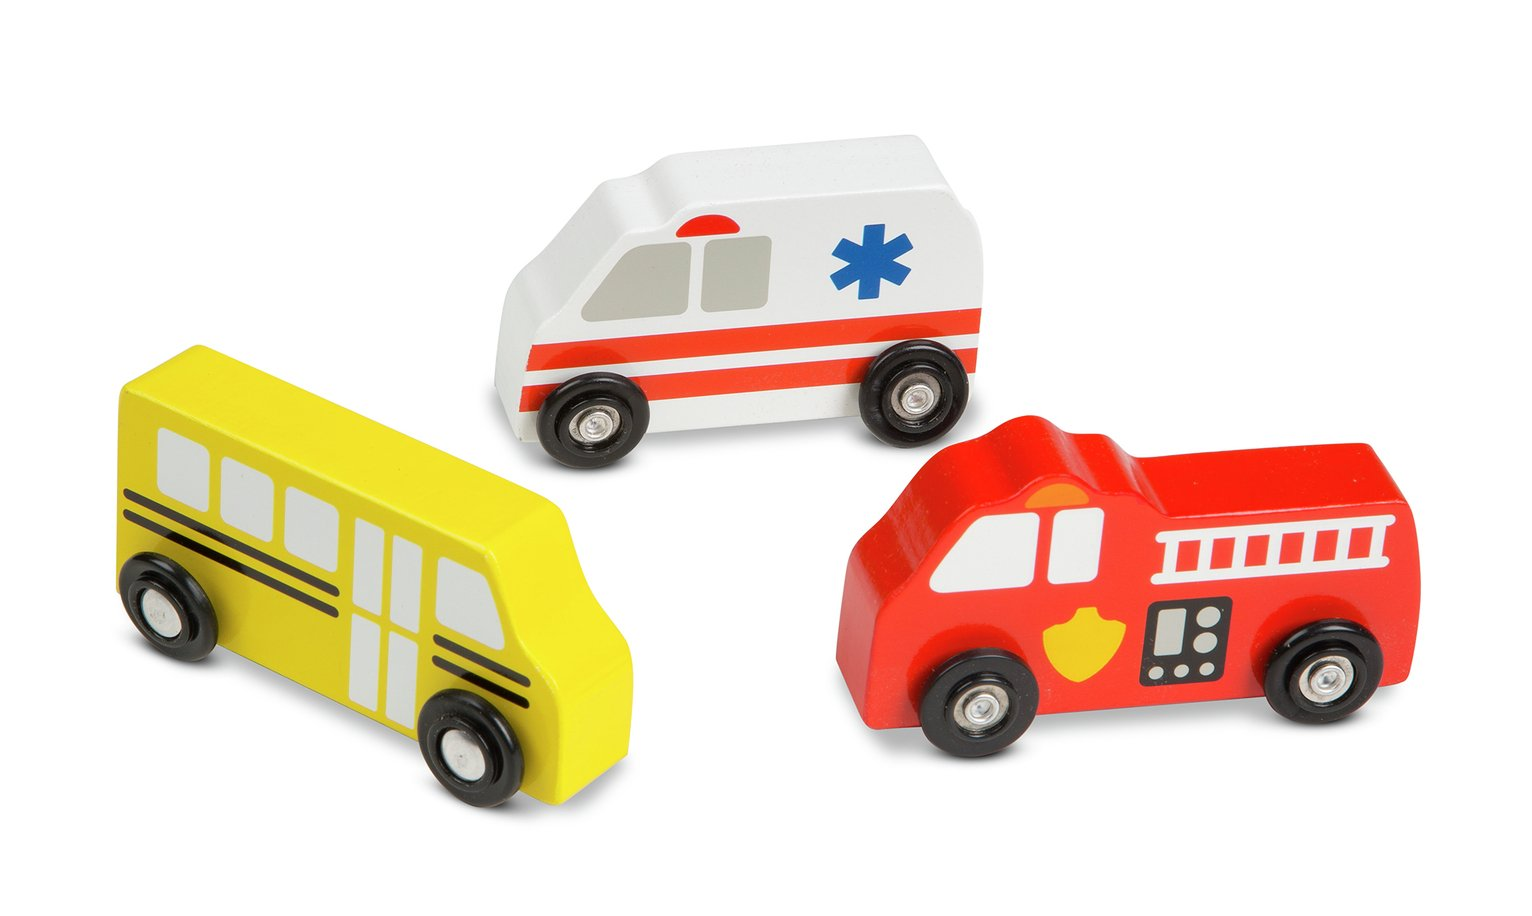 Melissa and Doug Wooden Town Vehicles